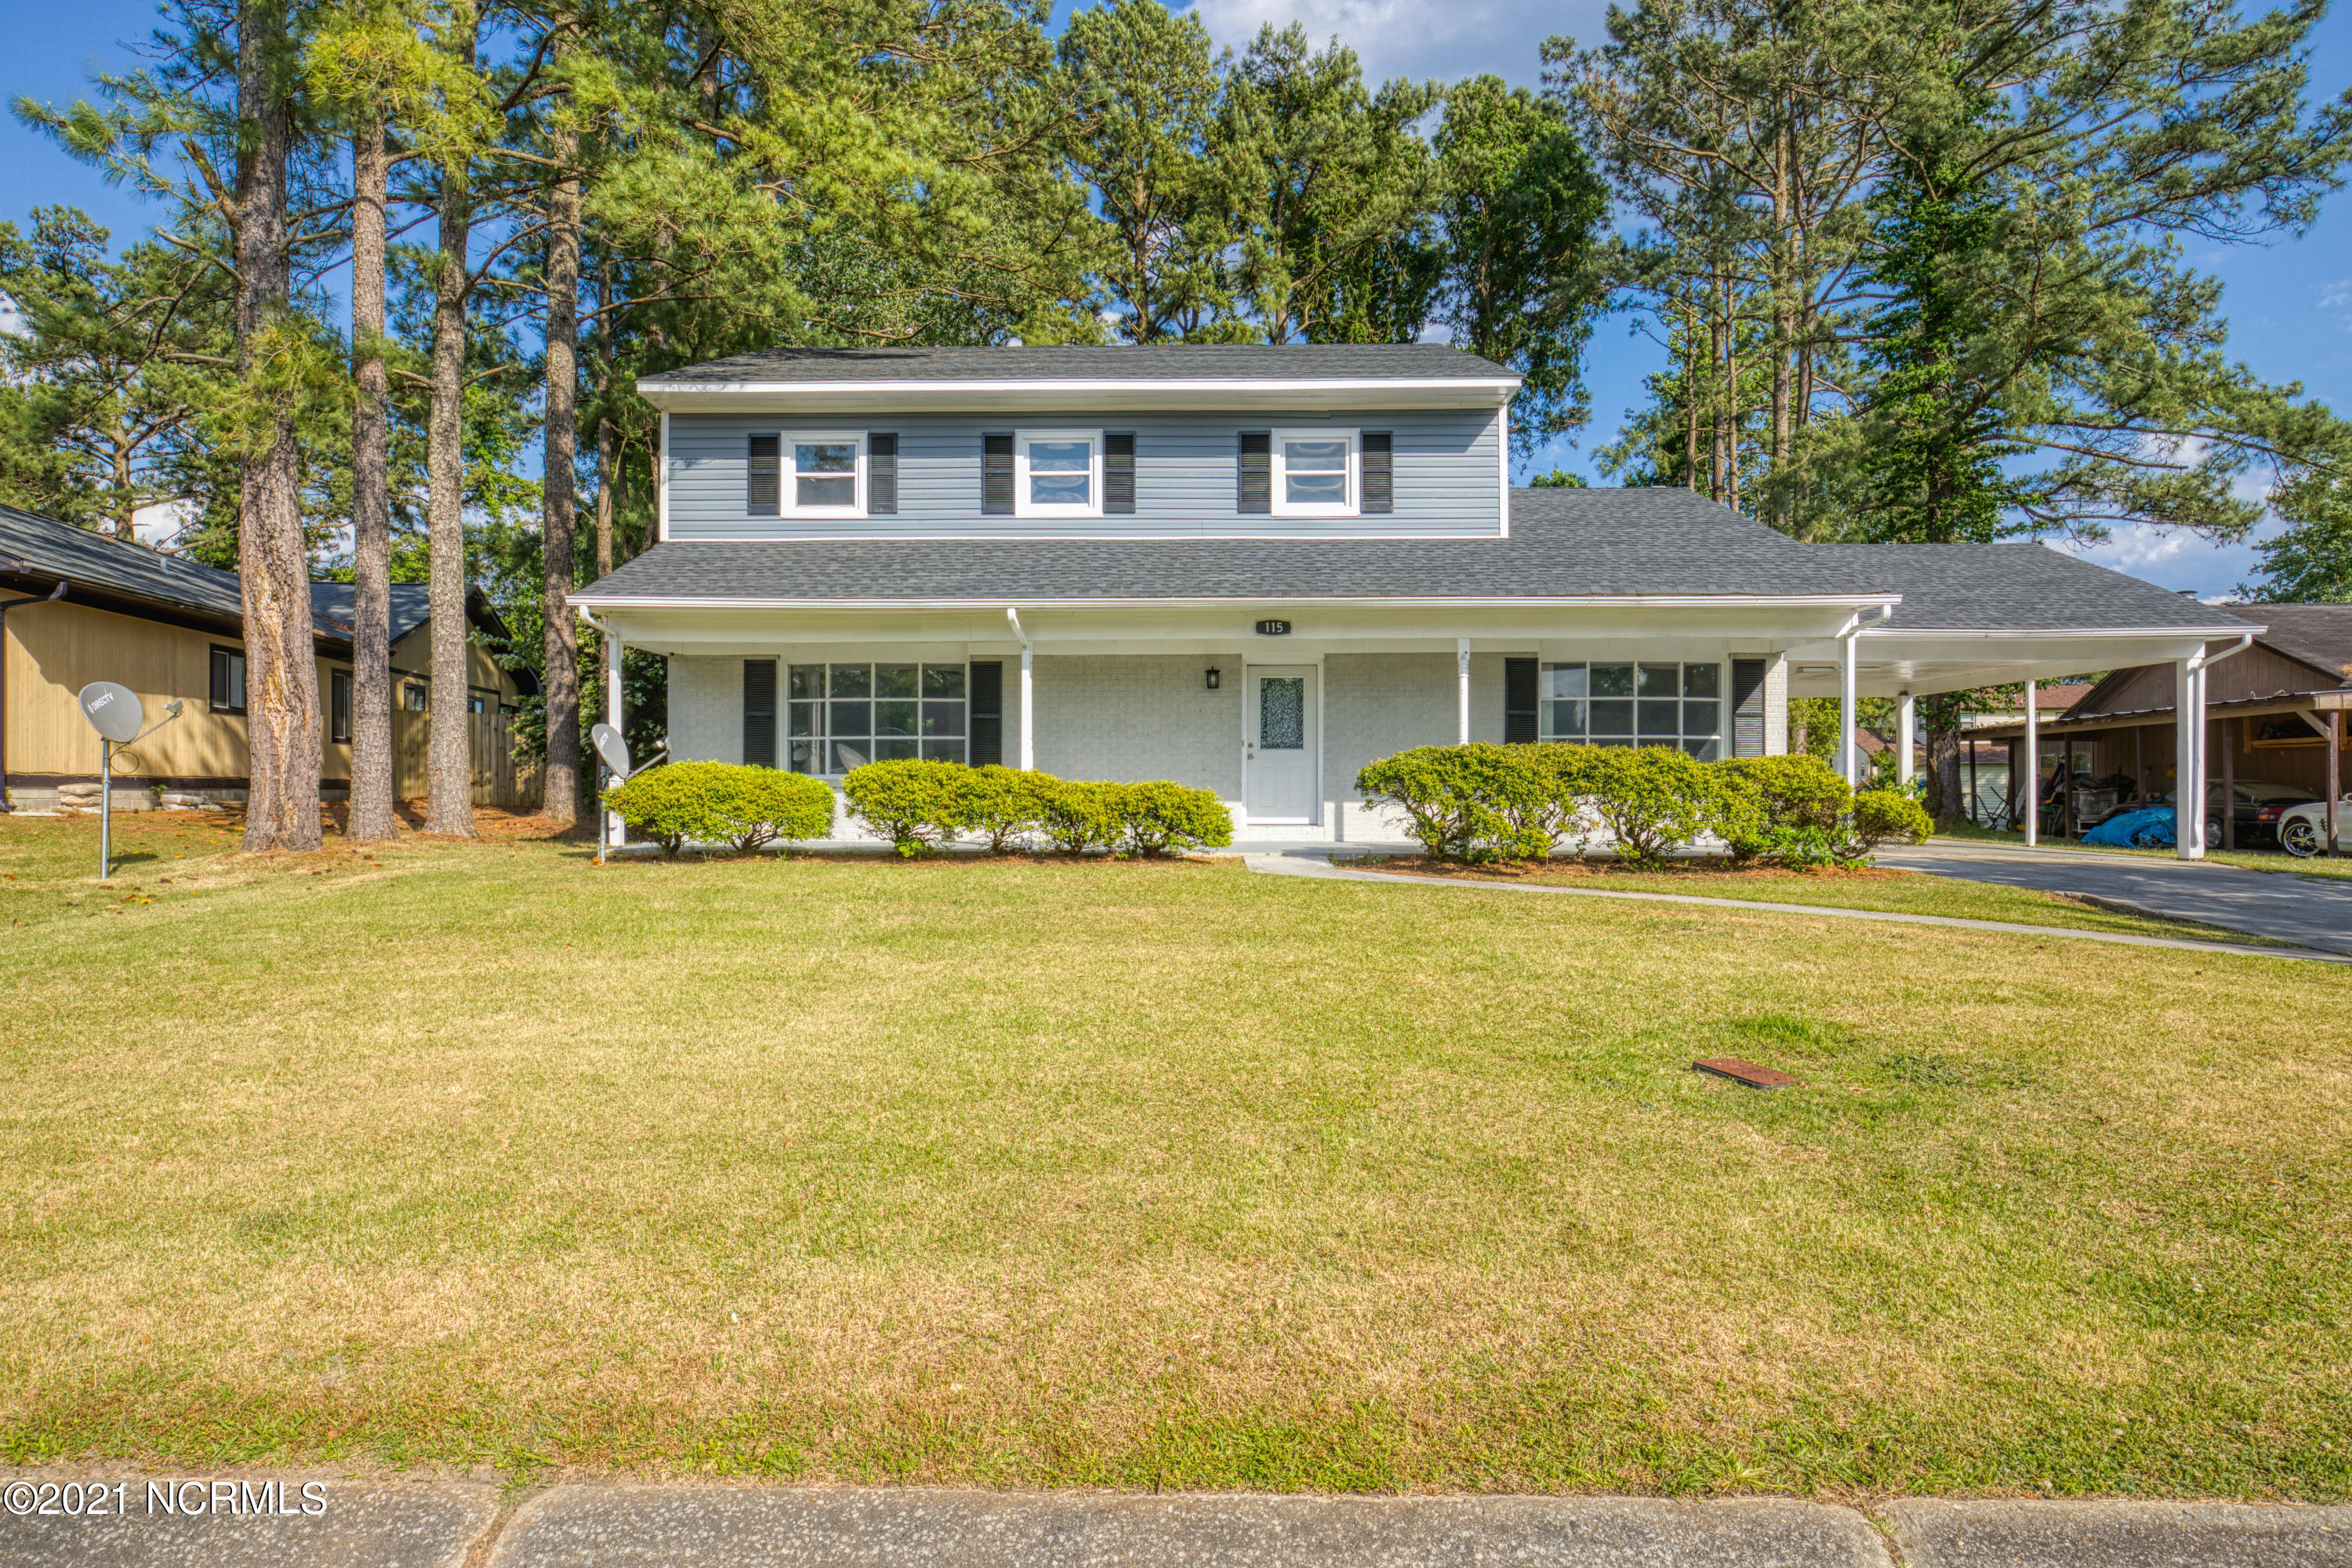 Lots of space in this house located just outside the city limits and within 10 minutes of both the Piney Green gate or the Main Gate of Camp Lejeune. Granite countertops, stainless steel appliances, nice backyard and a carport area. Show today before it is gone!!